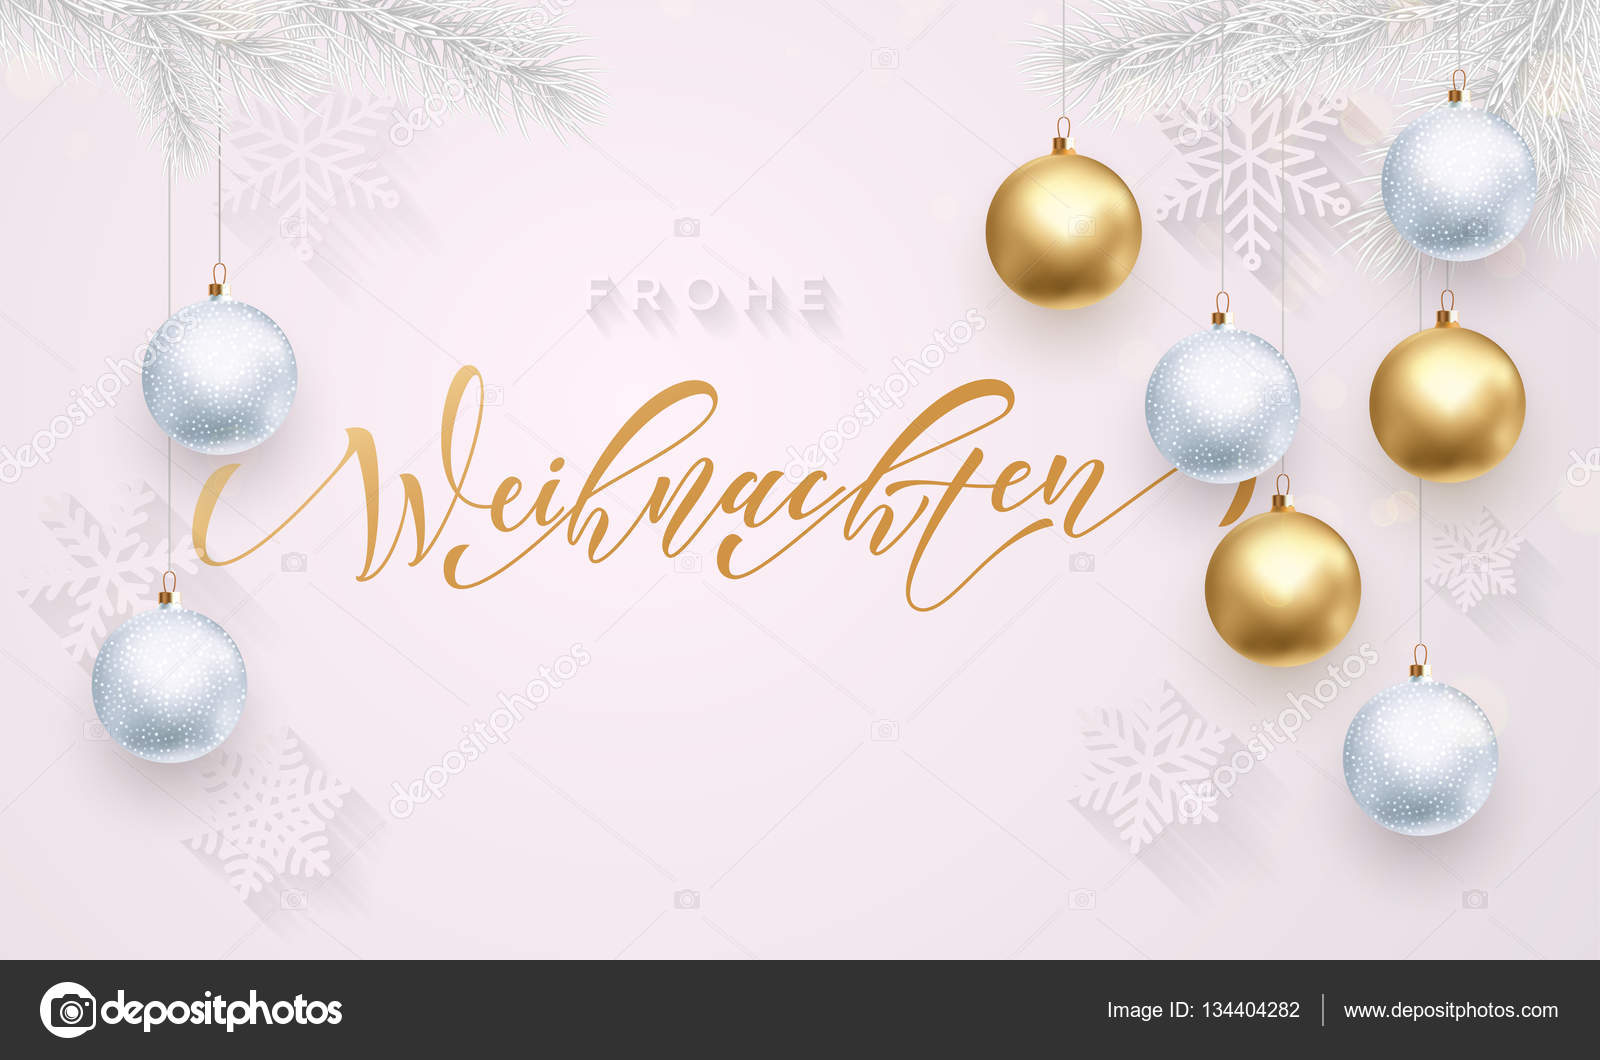 German Christmas Frohe Weihnachten Gold And White Snowflake Ornament